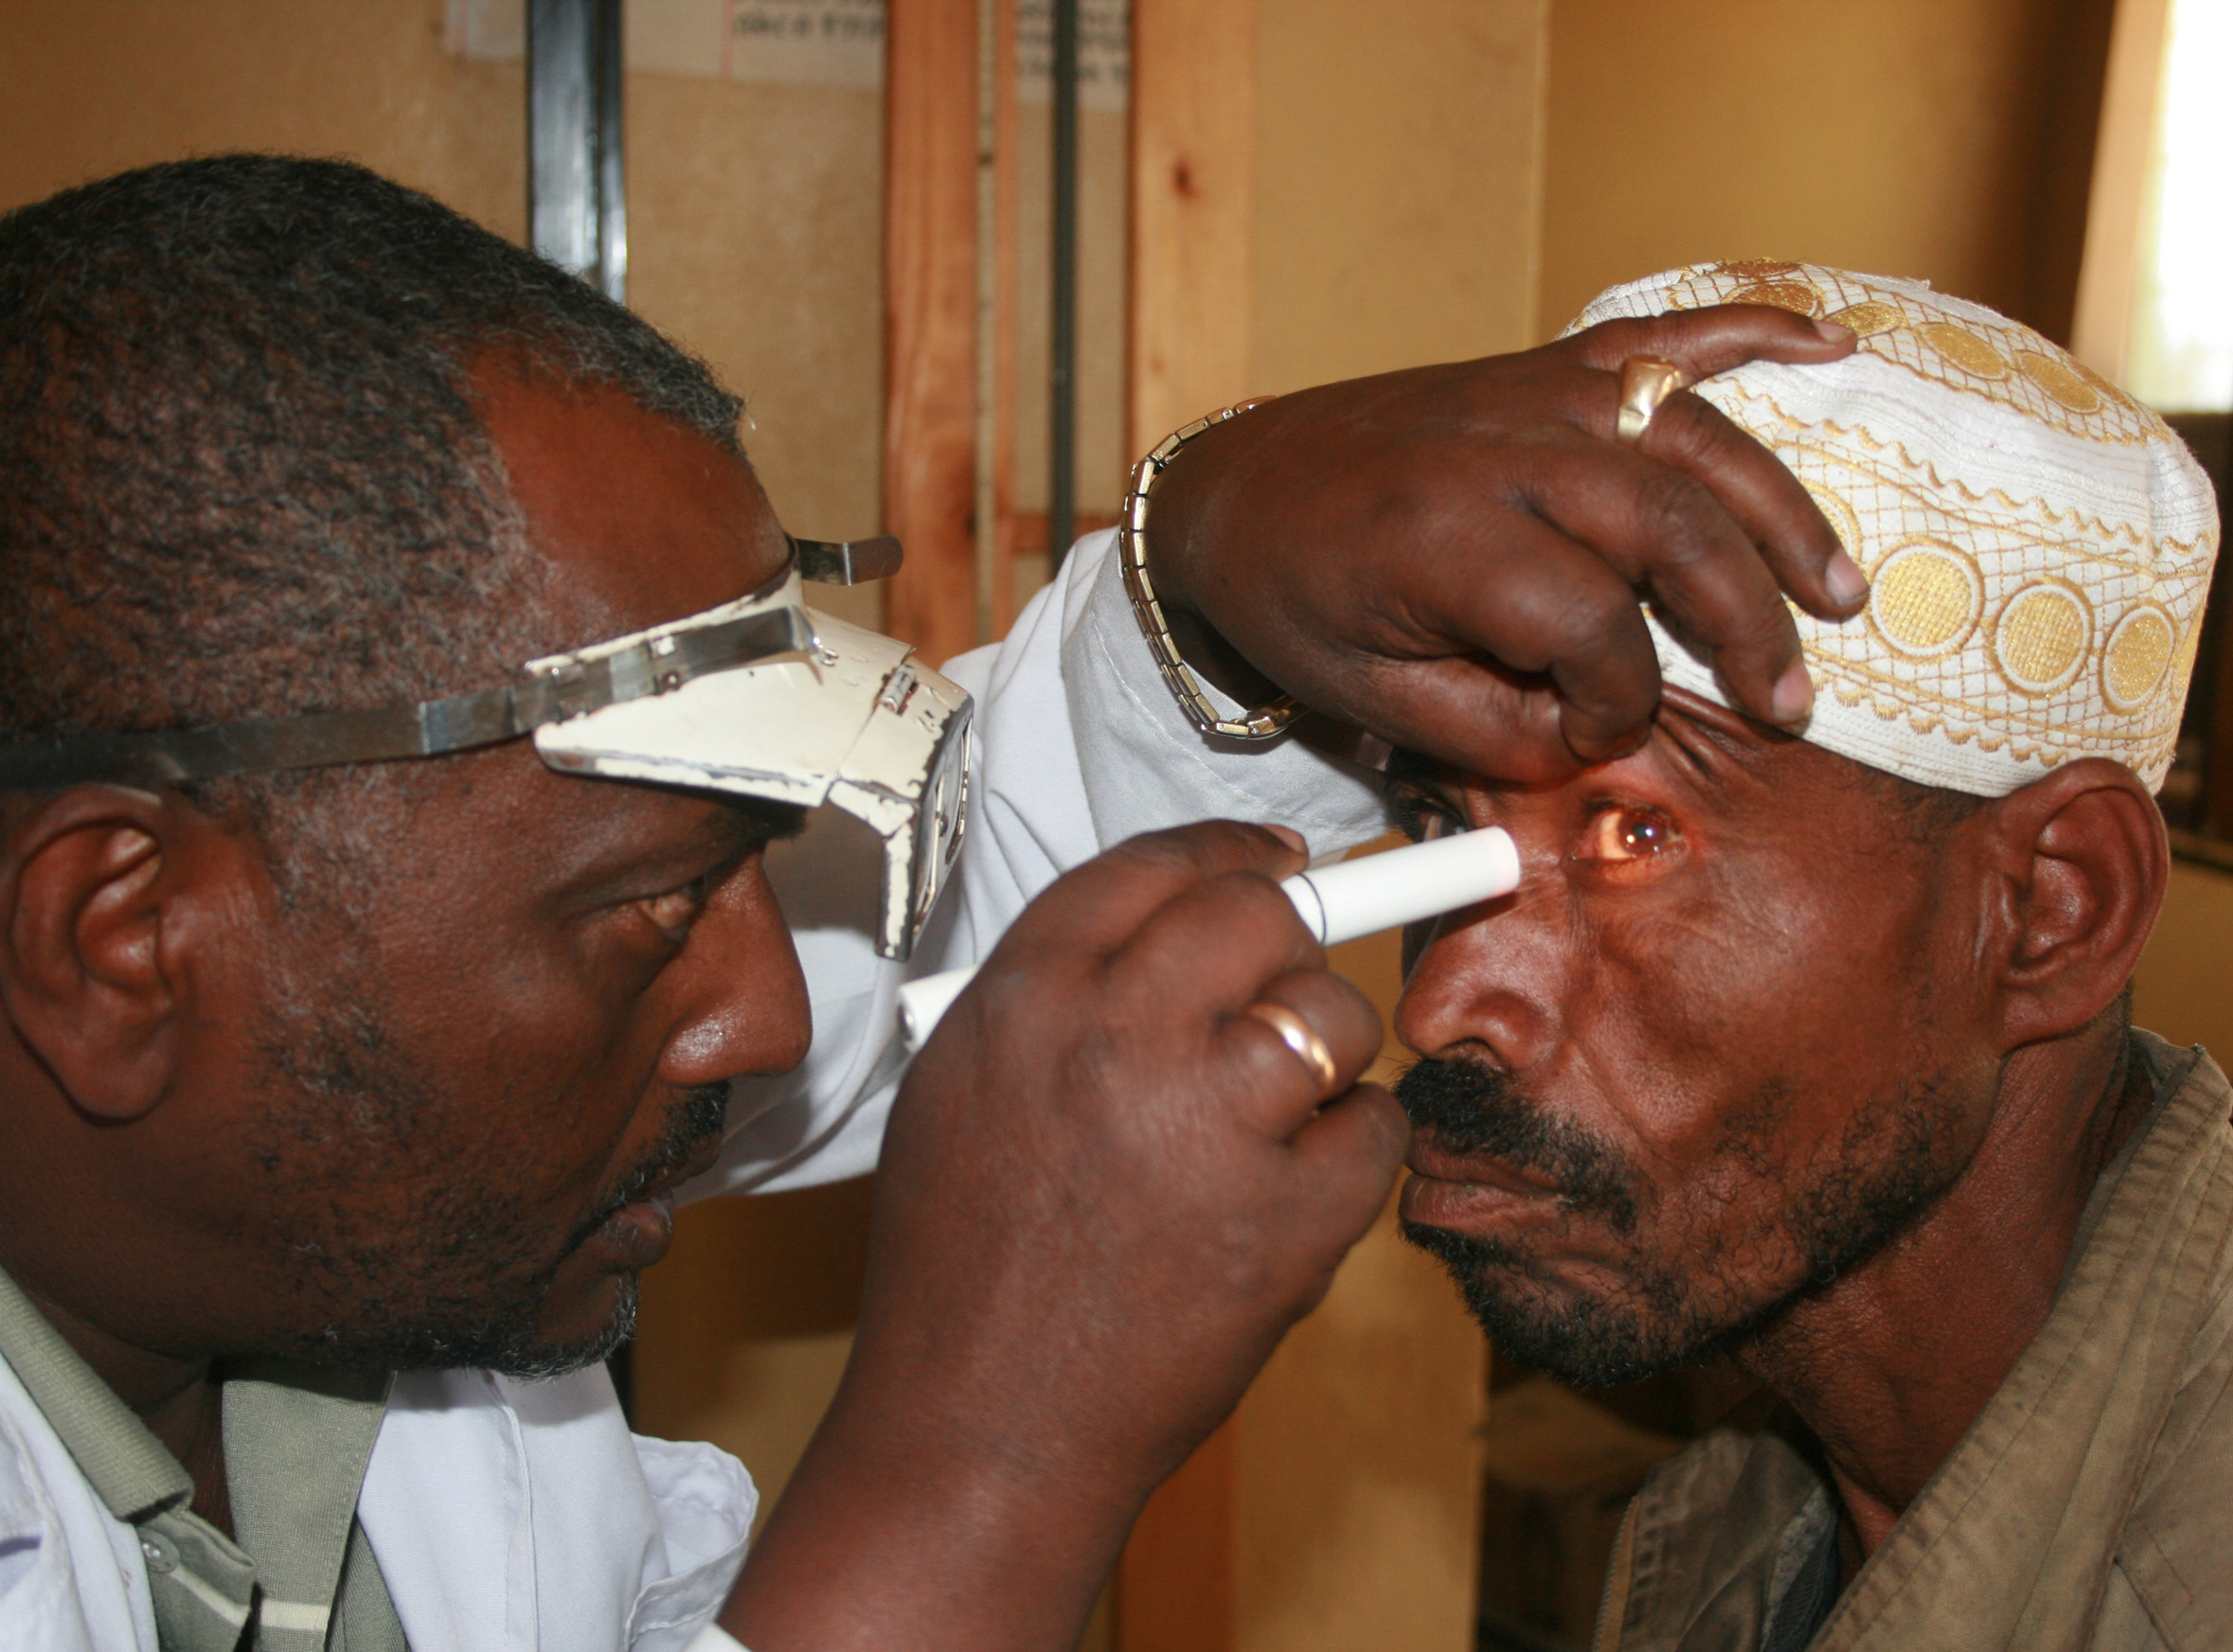 A patient gets his eyes checked for trachoma at a clinic in Ethiopia